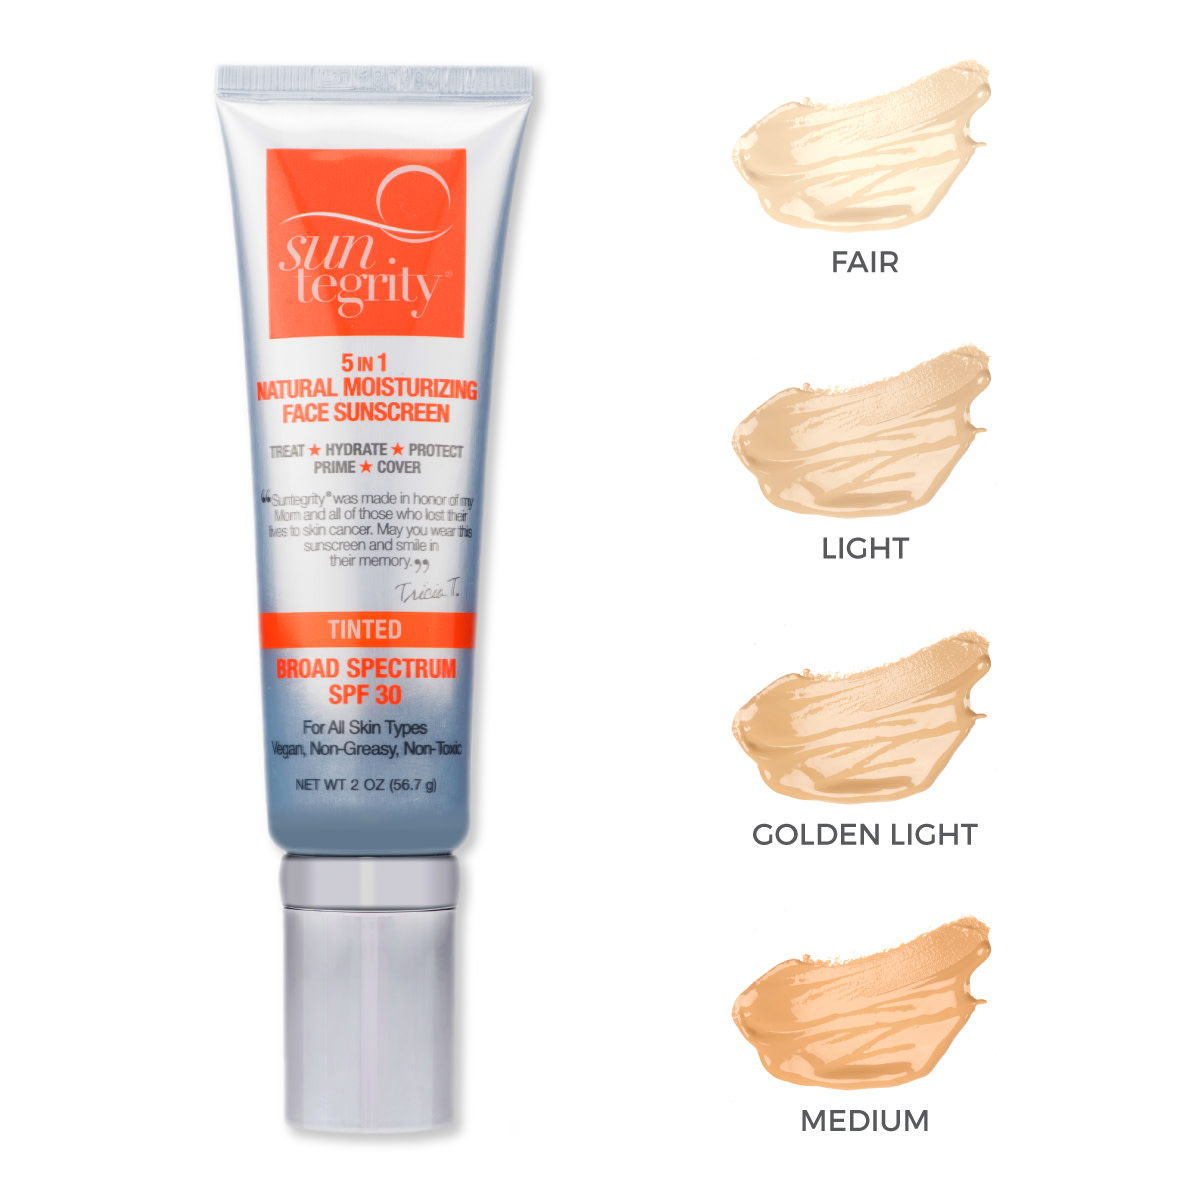 Suntegrity 5-In-1 Natural Moisturizing Tinted Face Sunscreen SPF 30